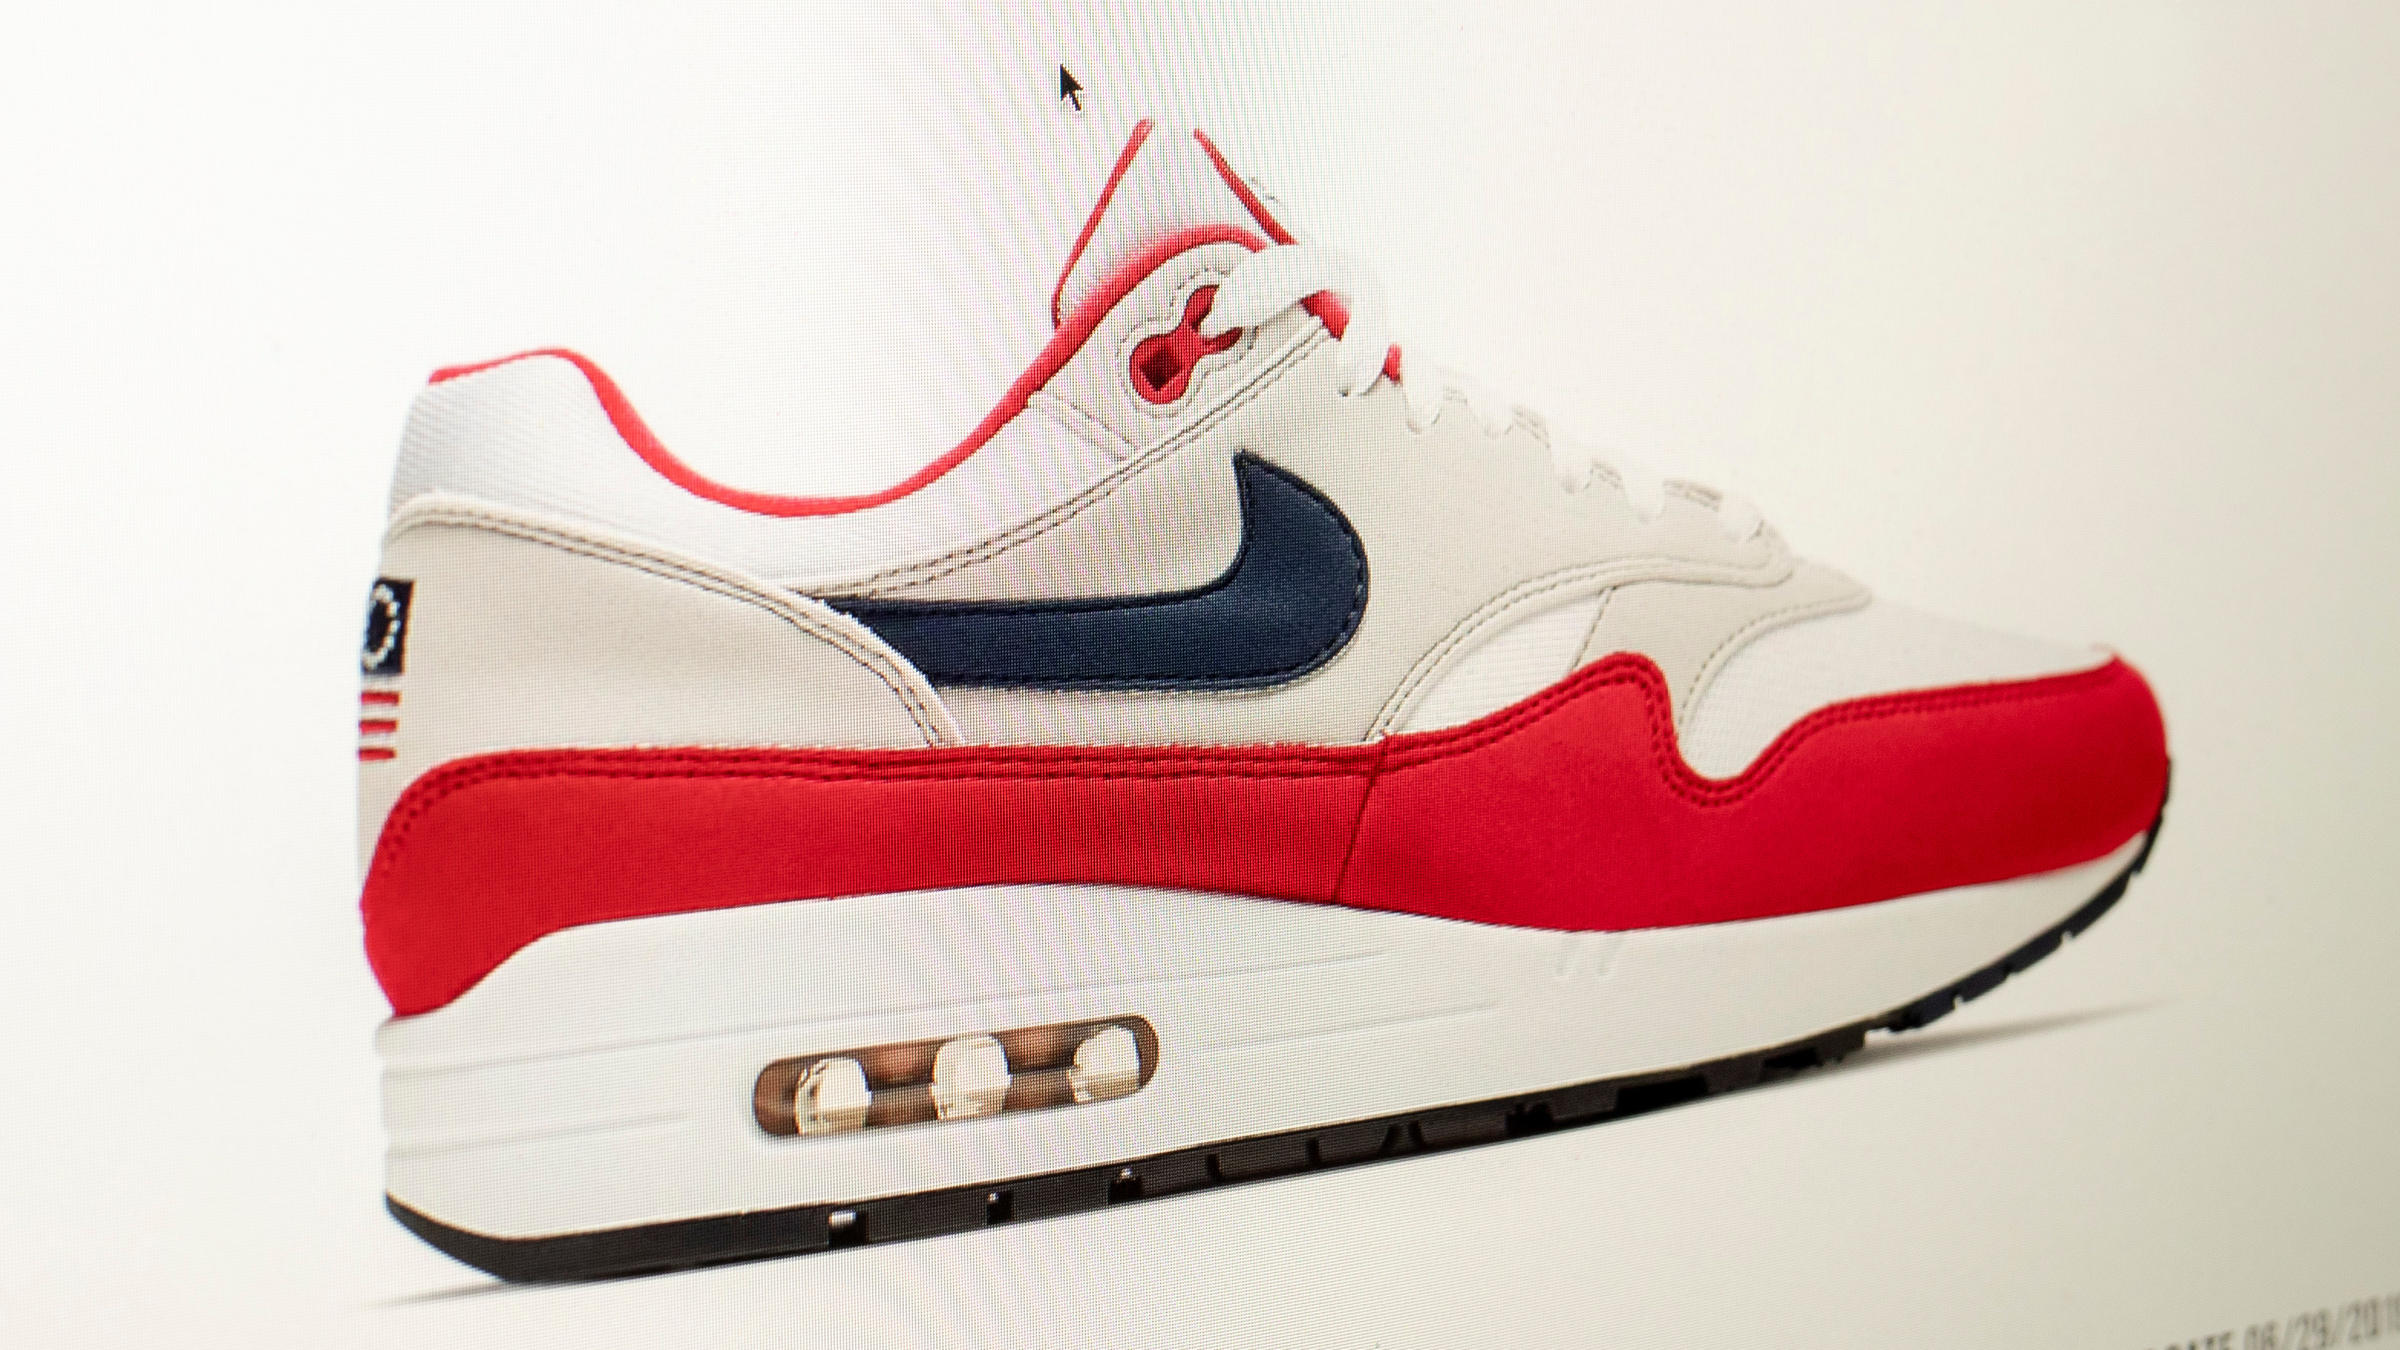 3660a951 Nike ordered a recall of its new July Fourth-themed Air Max 1 sneakers over  concerns about its Betsy Ross flag logo. Prices for the shoes rocketed on  the ...